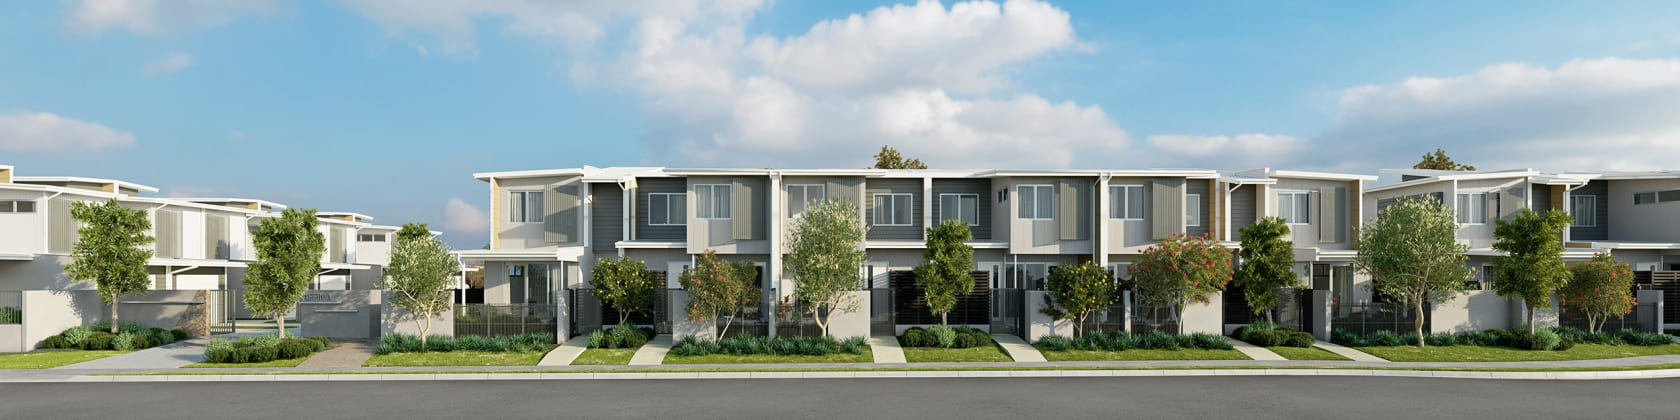 Affina Brightwater - 11 Panama Crescent, Mountain Creek. Image: Stockland